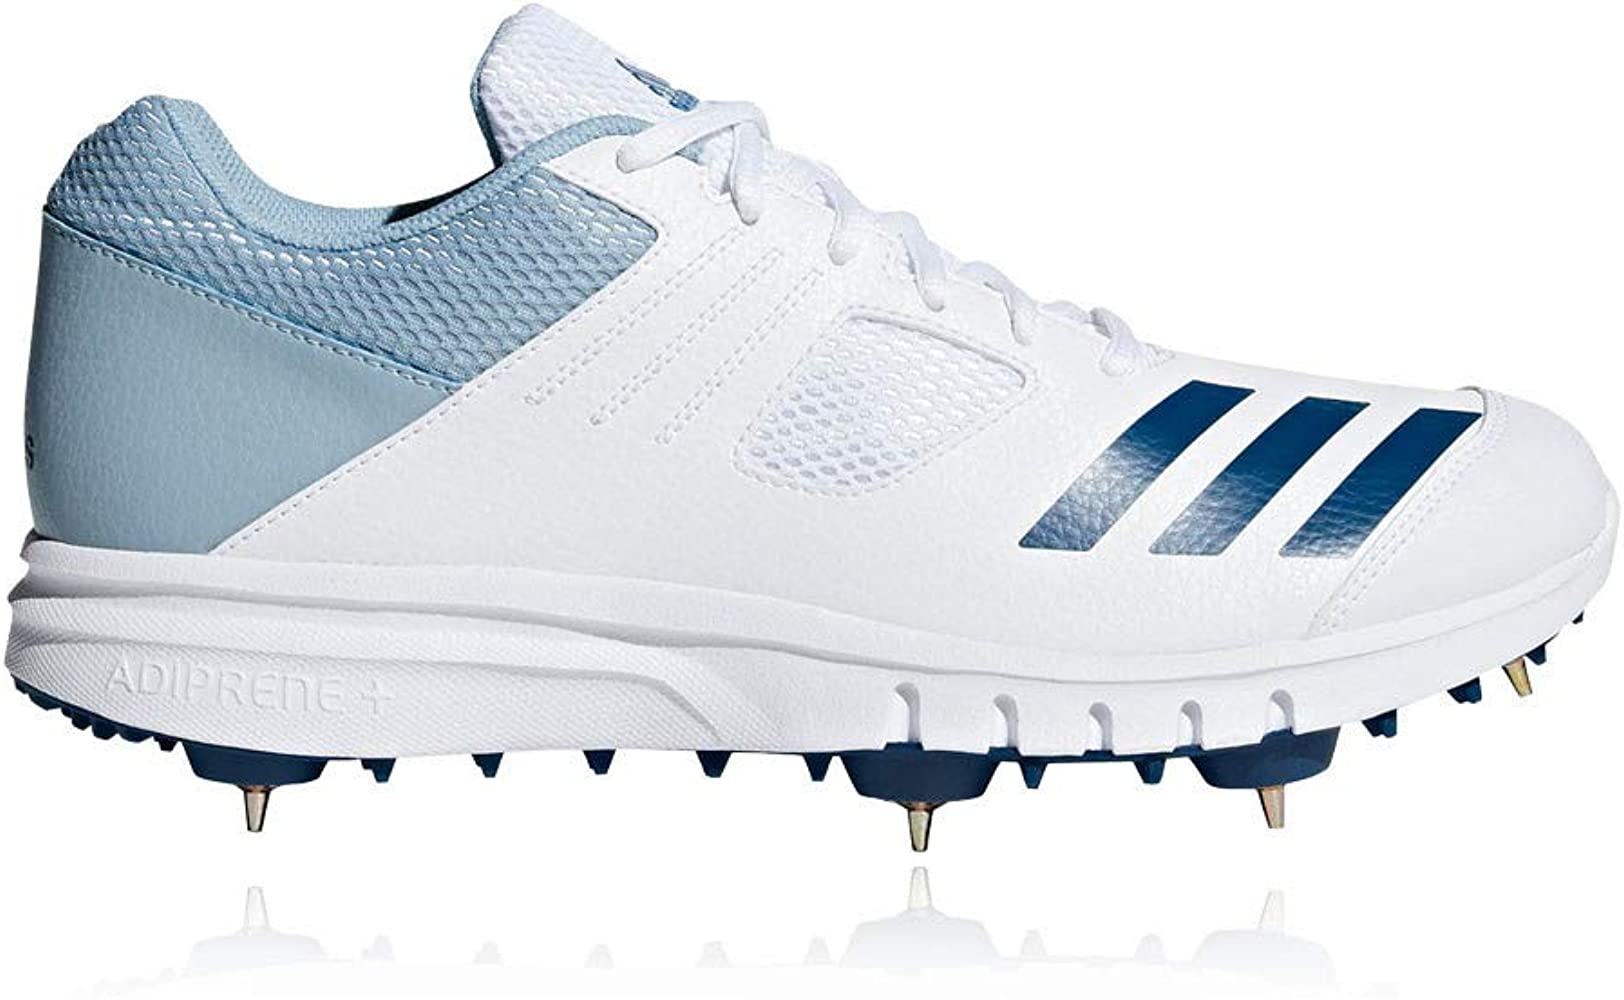 Adidas Howzat Cricket Zapatilla Running De Clavos Zapatillas ...